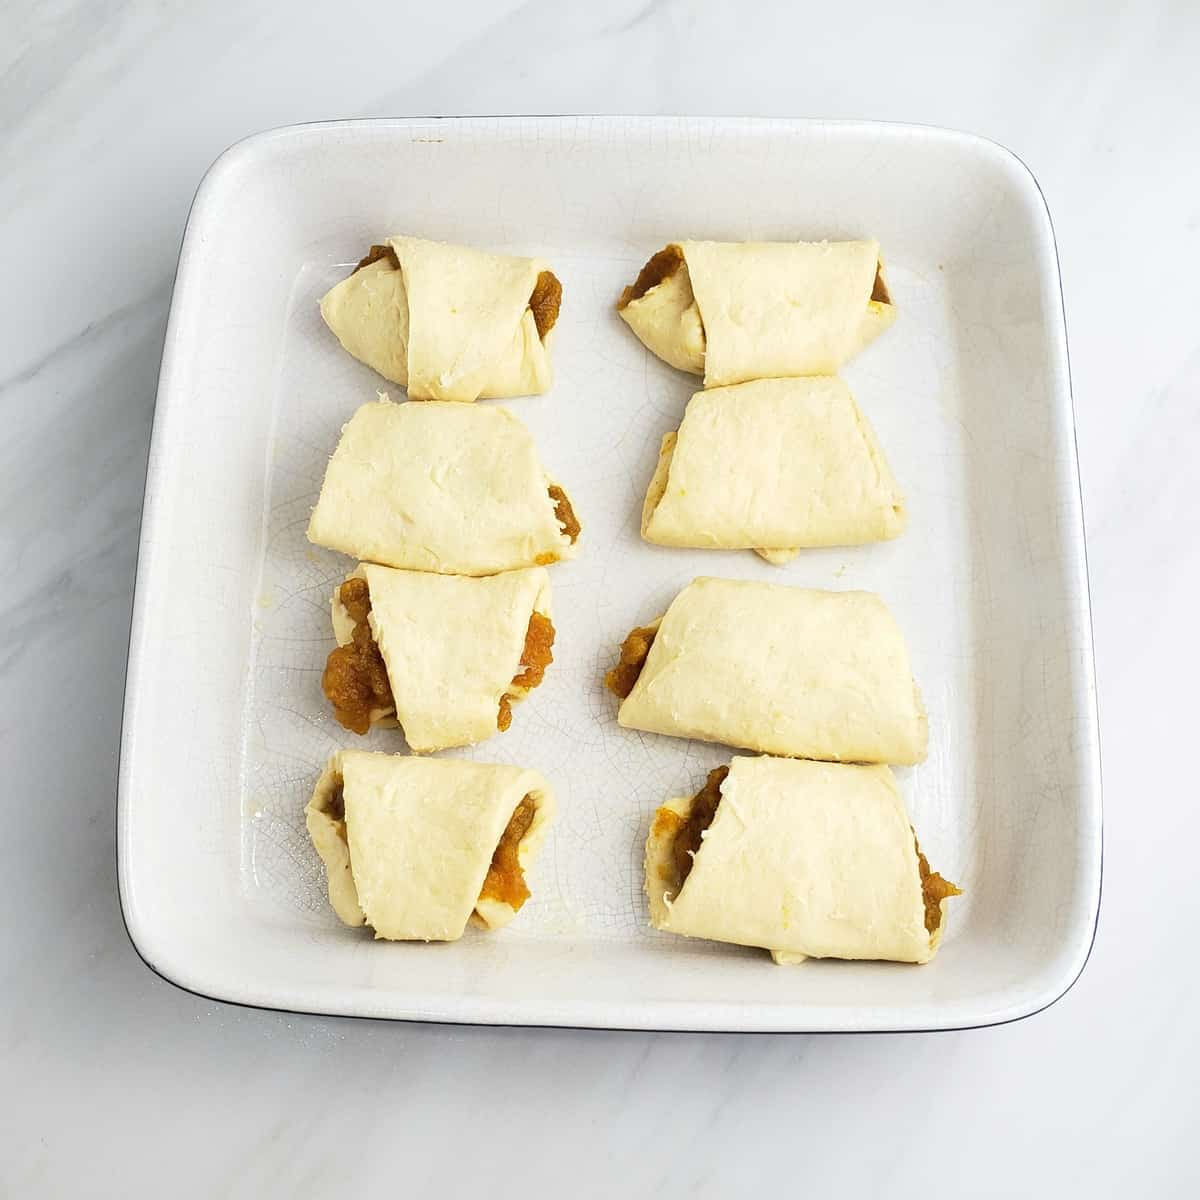 Unbaked crescent roll dough filled with pumpkin filling